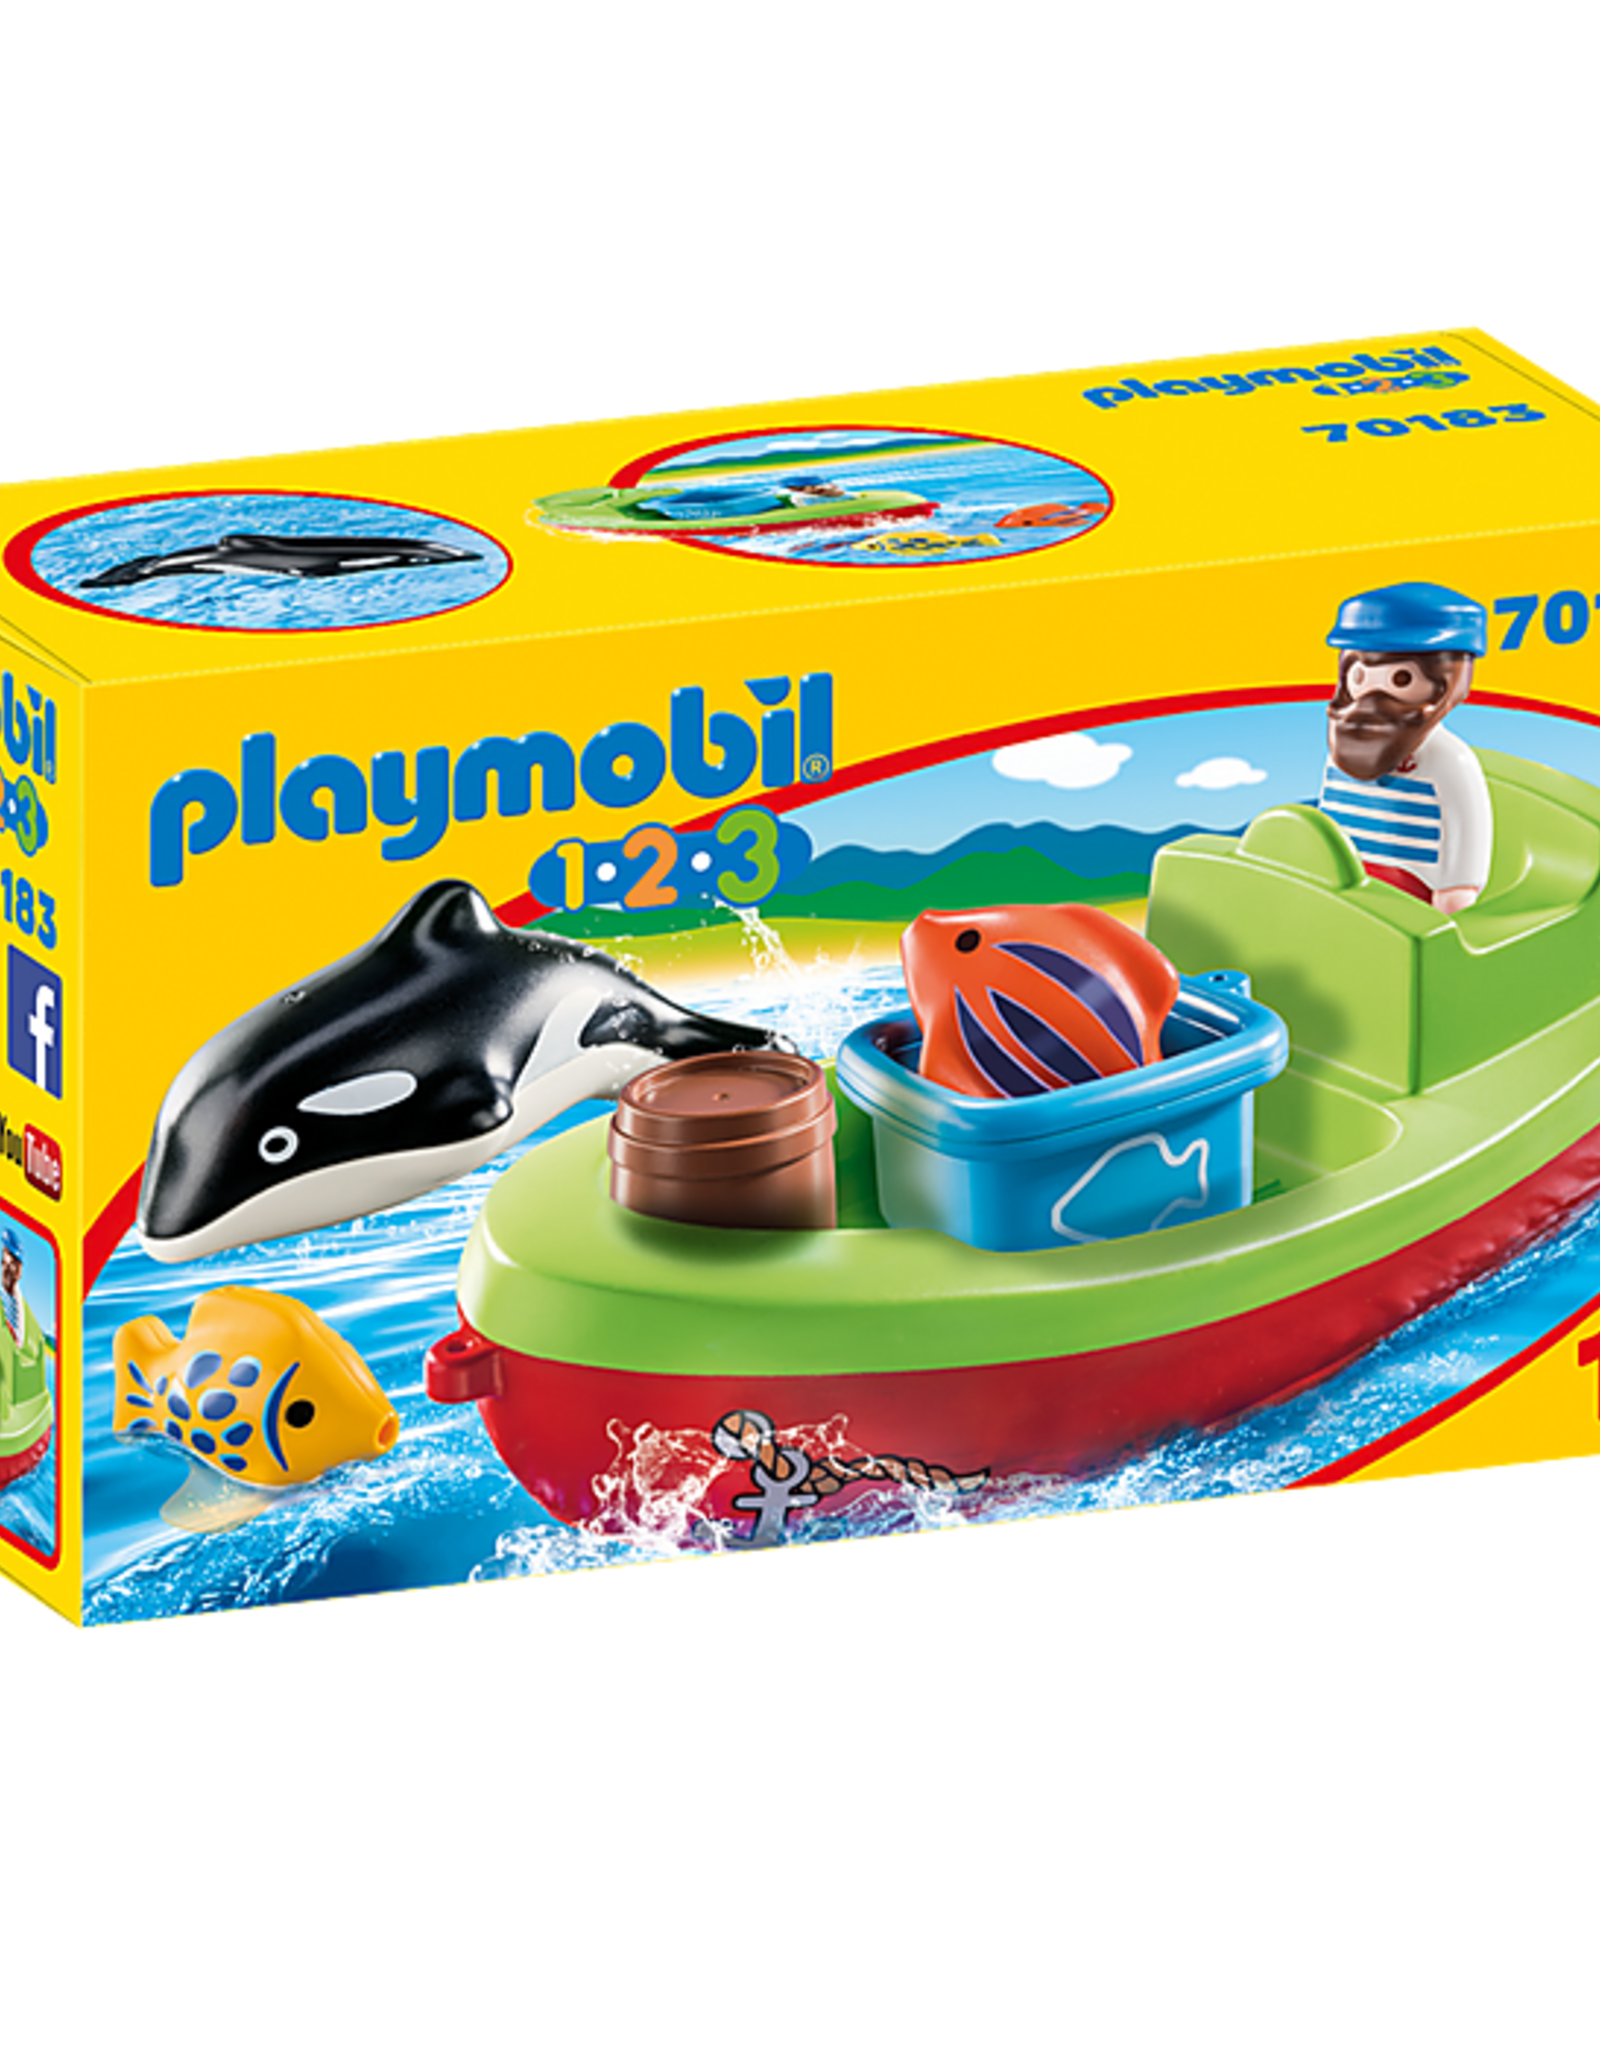 Playmobil 1,2,3 - Fisherman with Boat